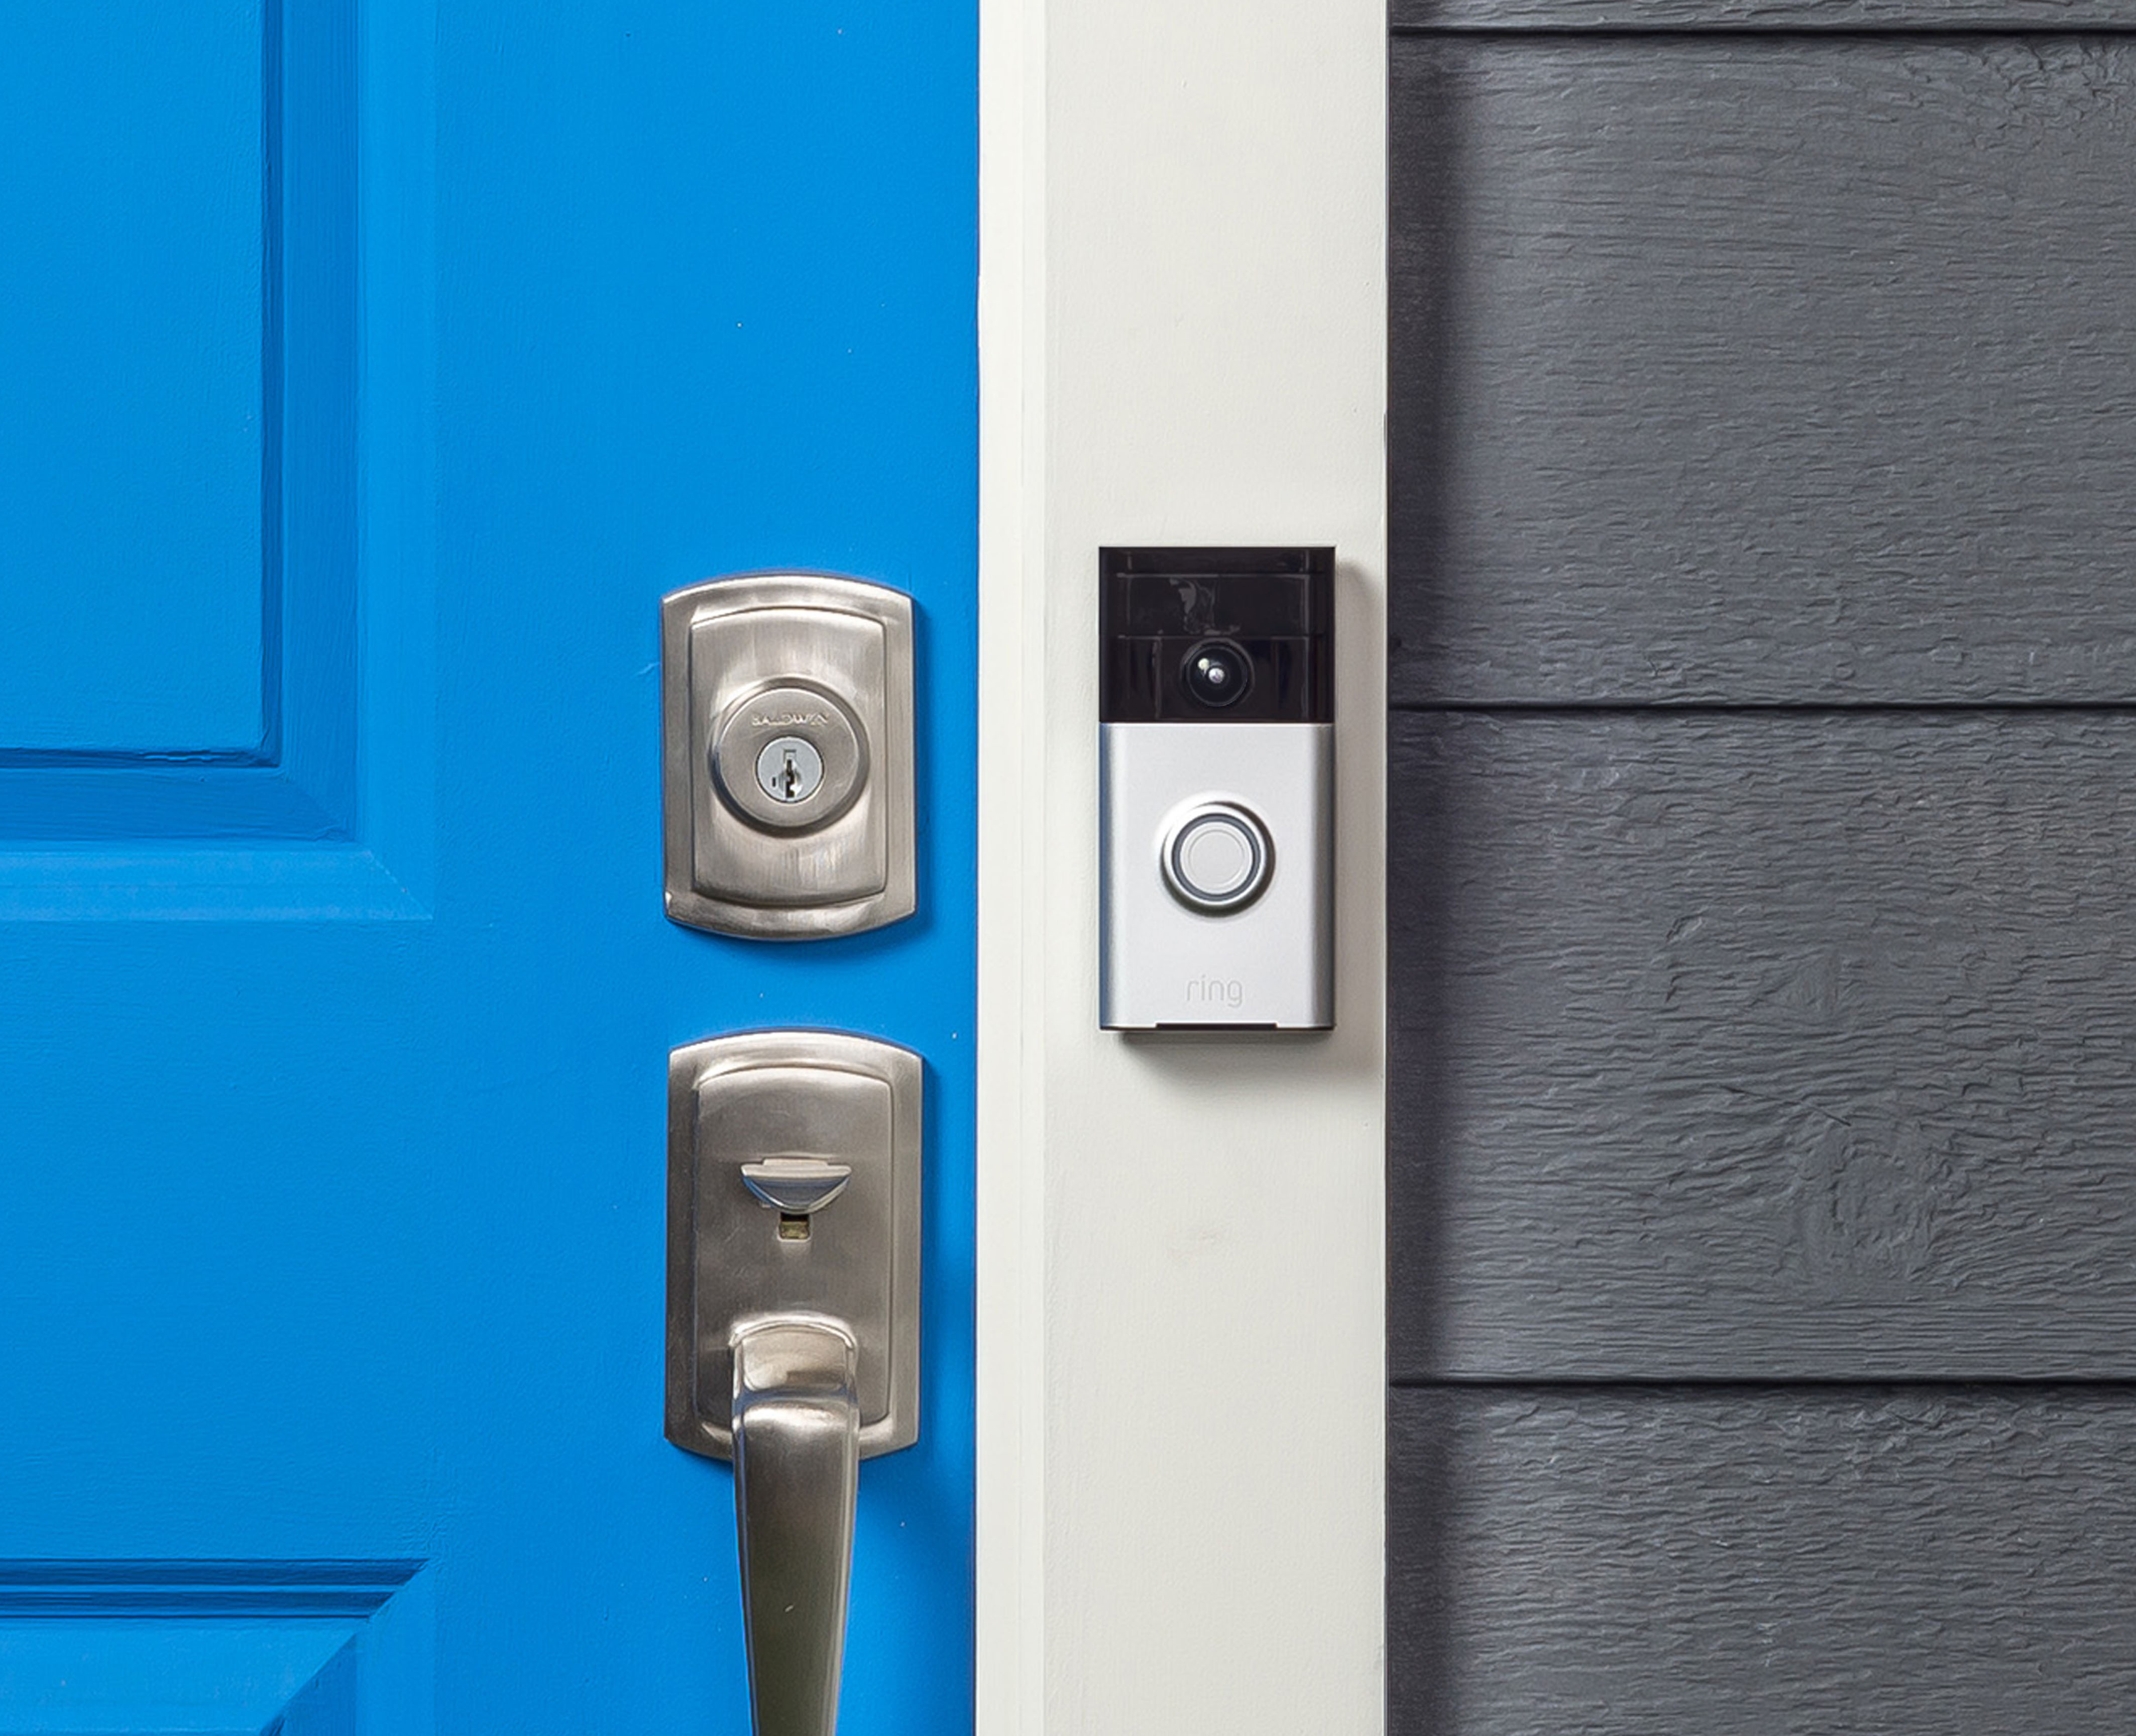 Guide: How to Install the Ring Video Doorbell 2